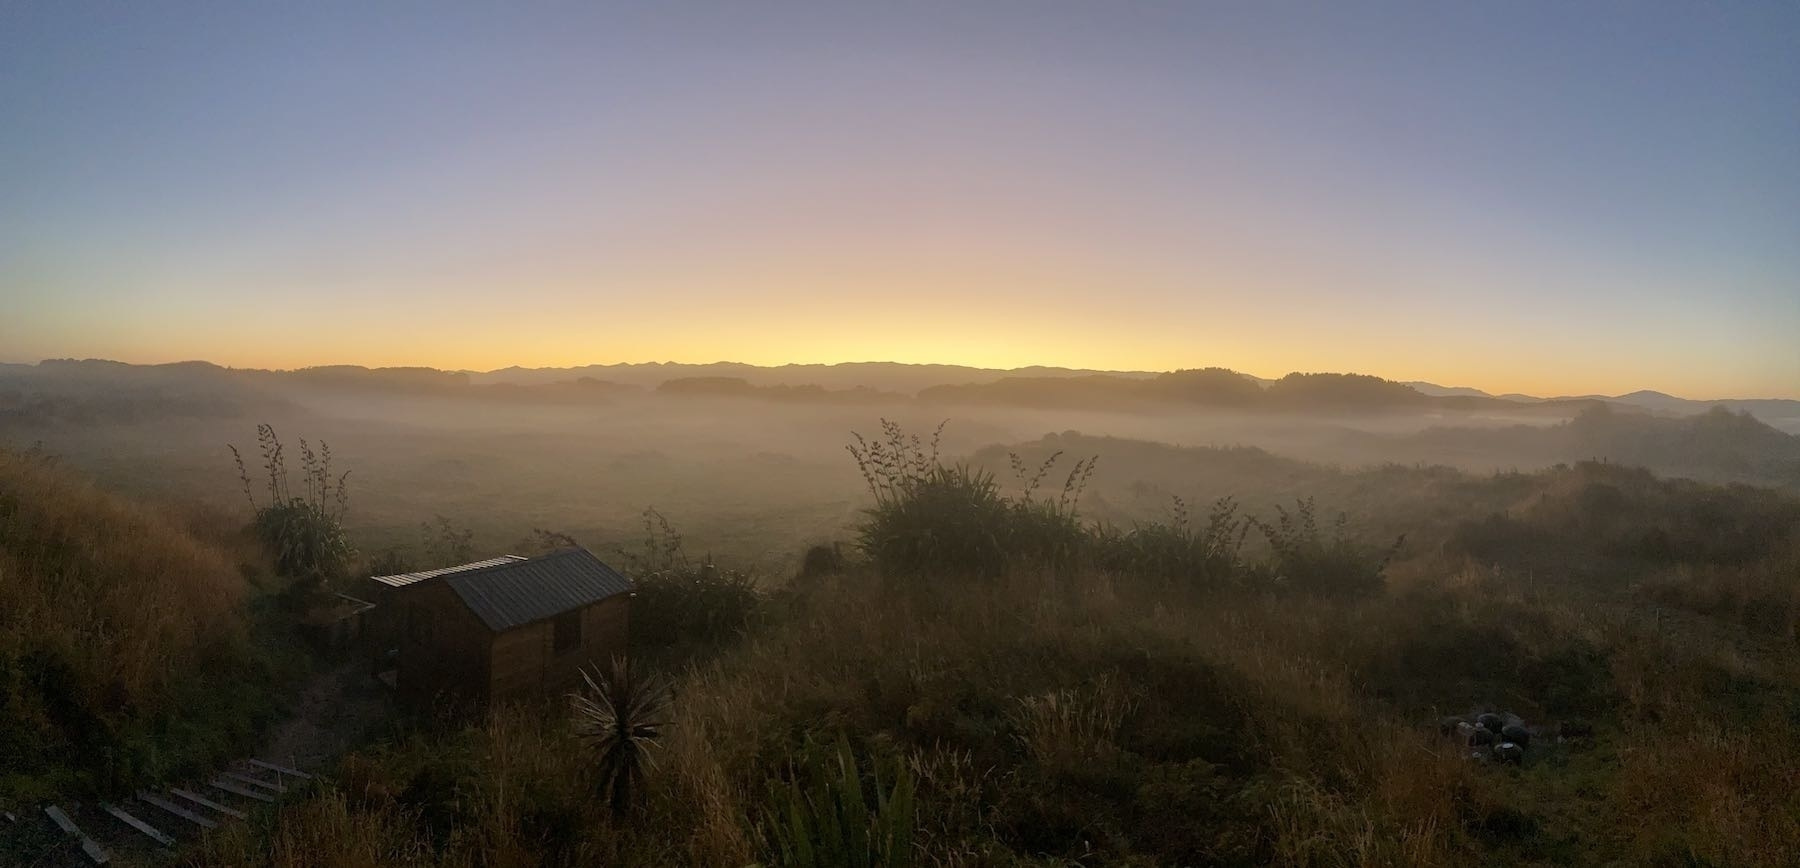 Ground fog over paddocks with golden glow behind distant hills.